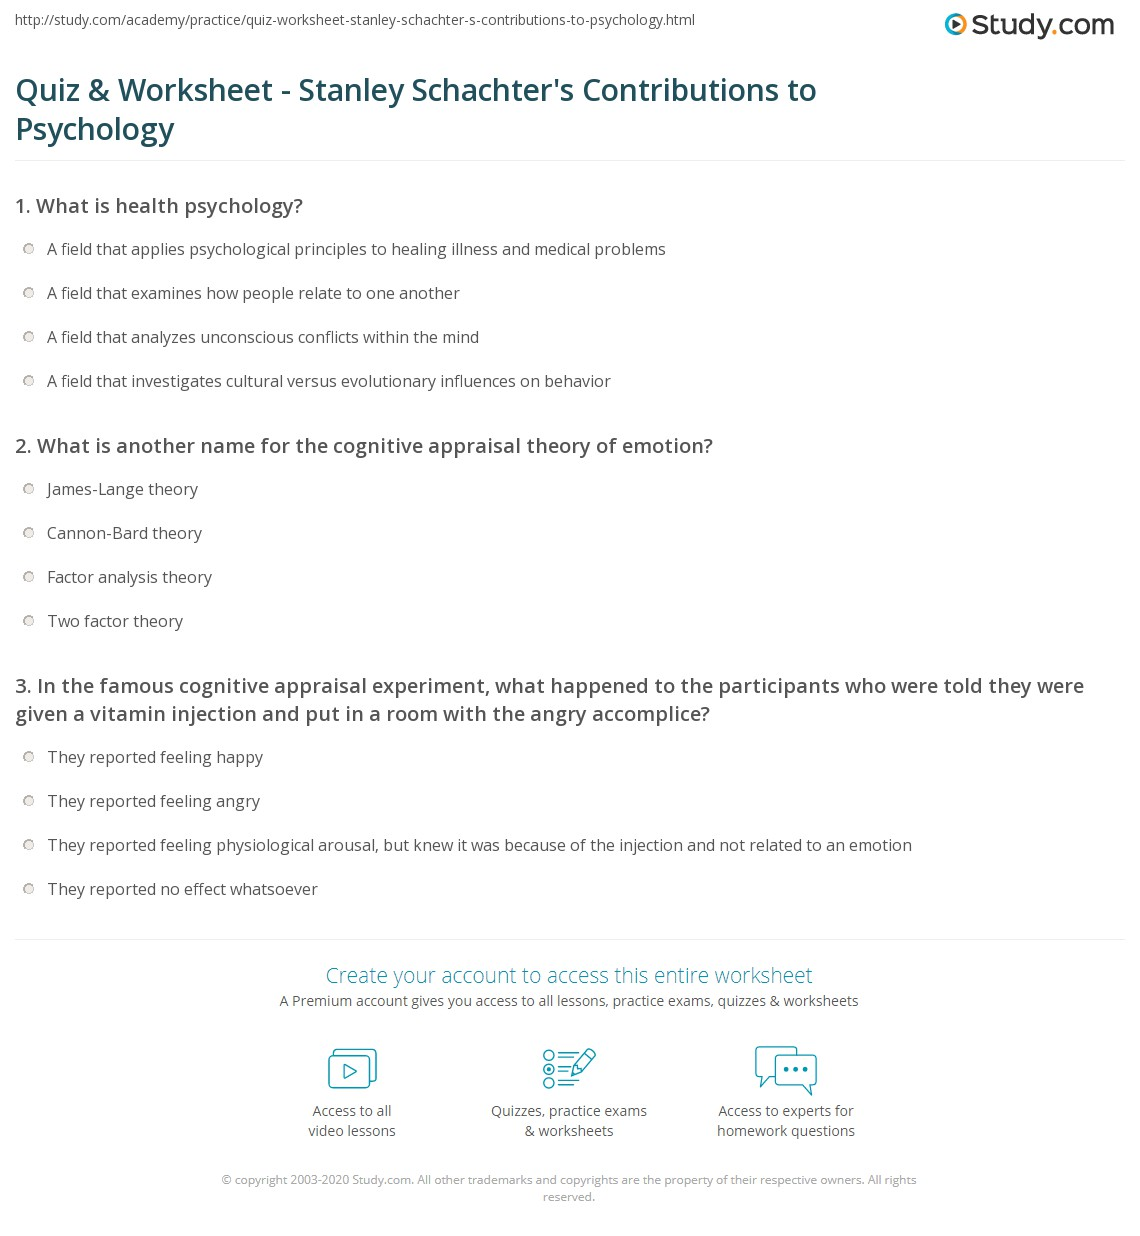 quiz & worksheet - stanley schachter's contributions to psychology